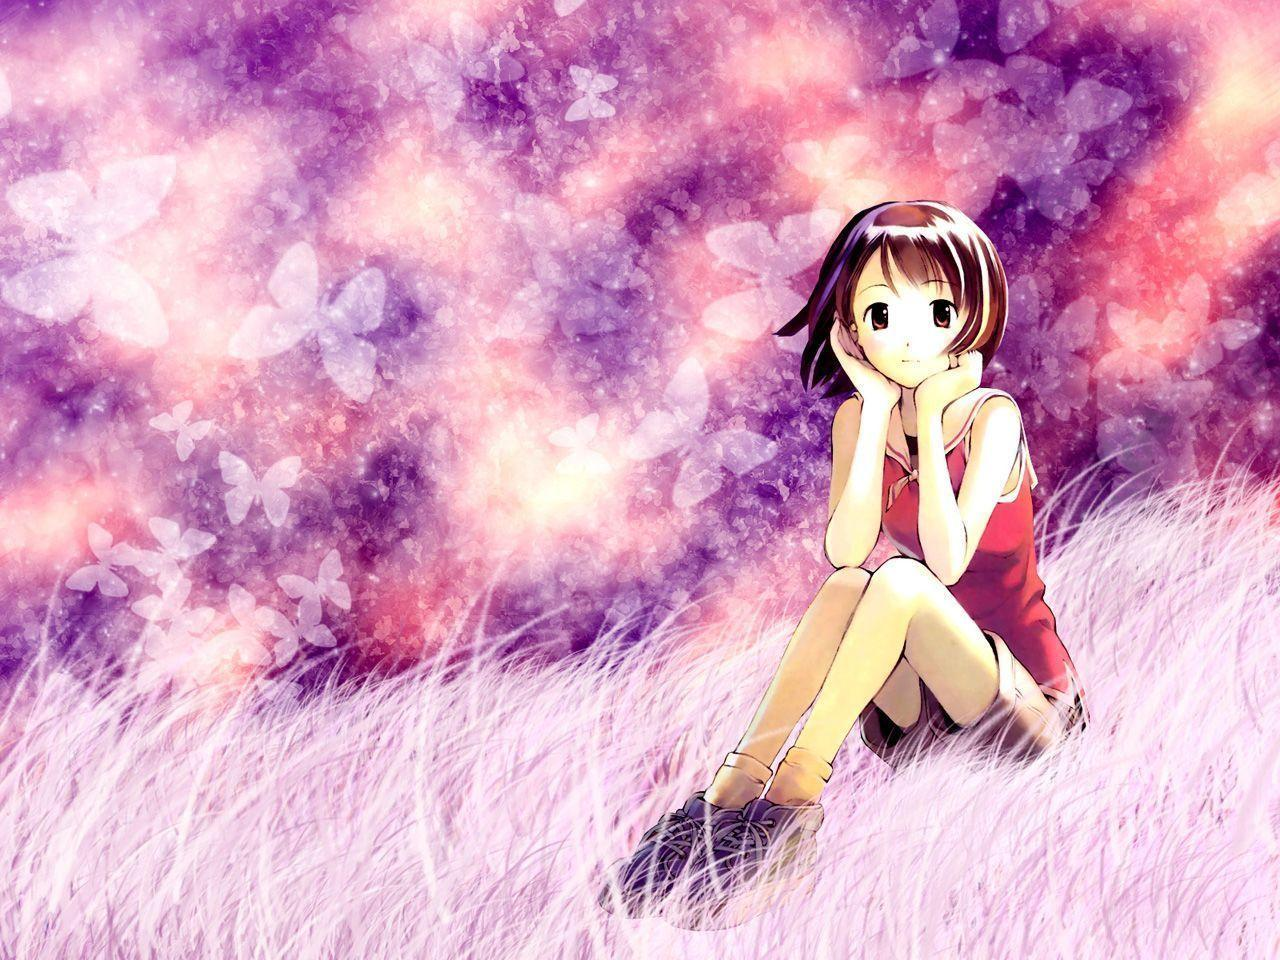 Wallpapers For > Wallpaper Backgrounds Cute Anime